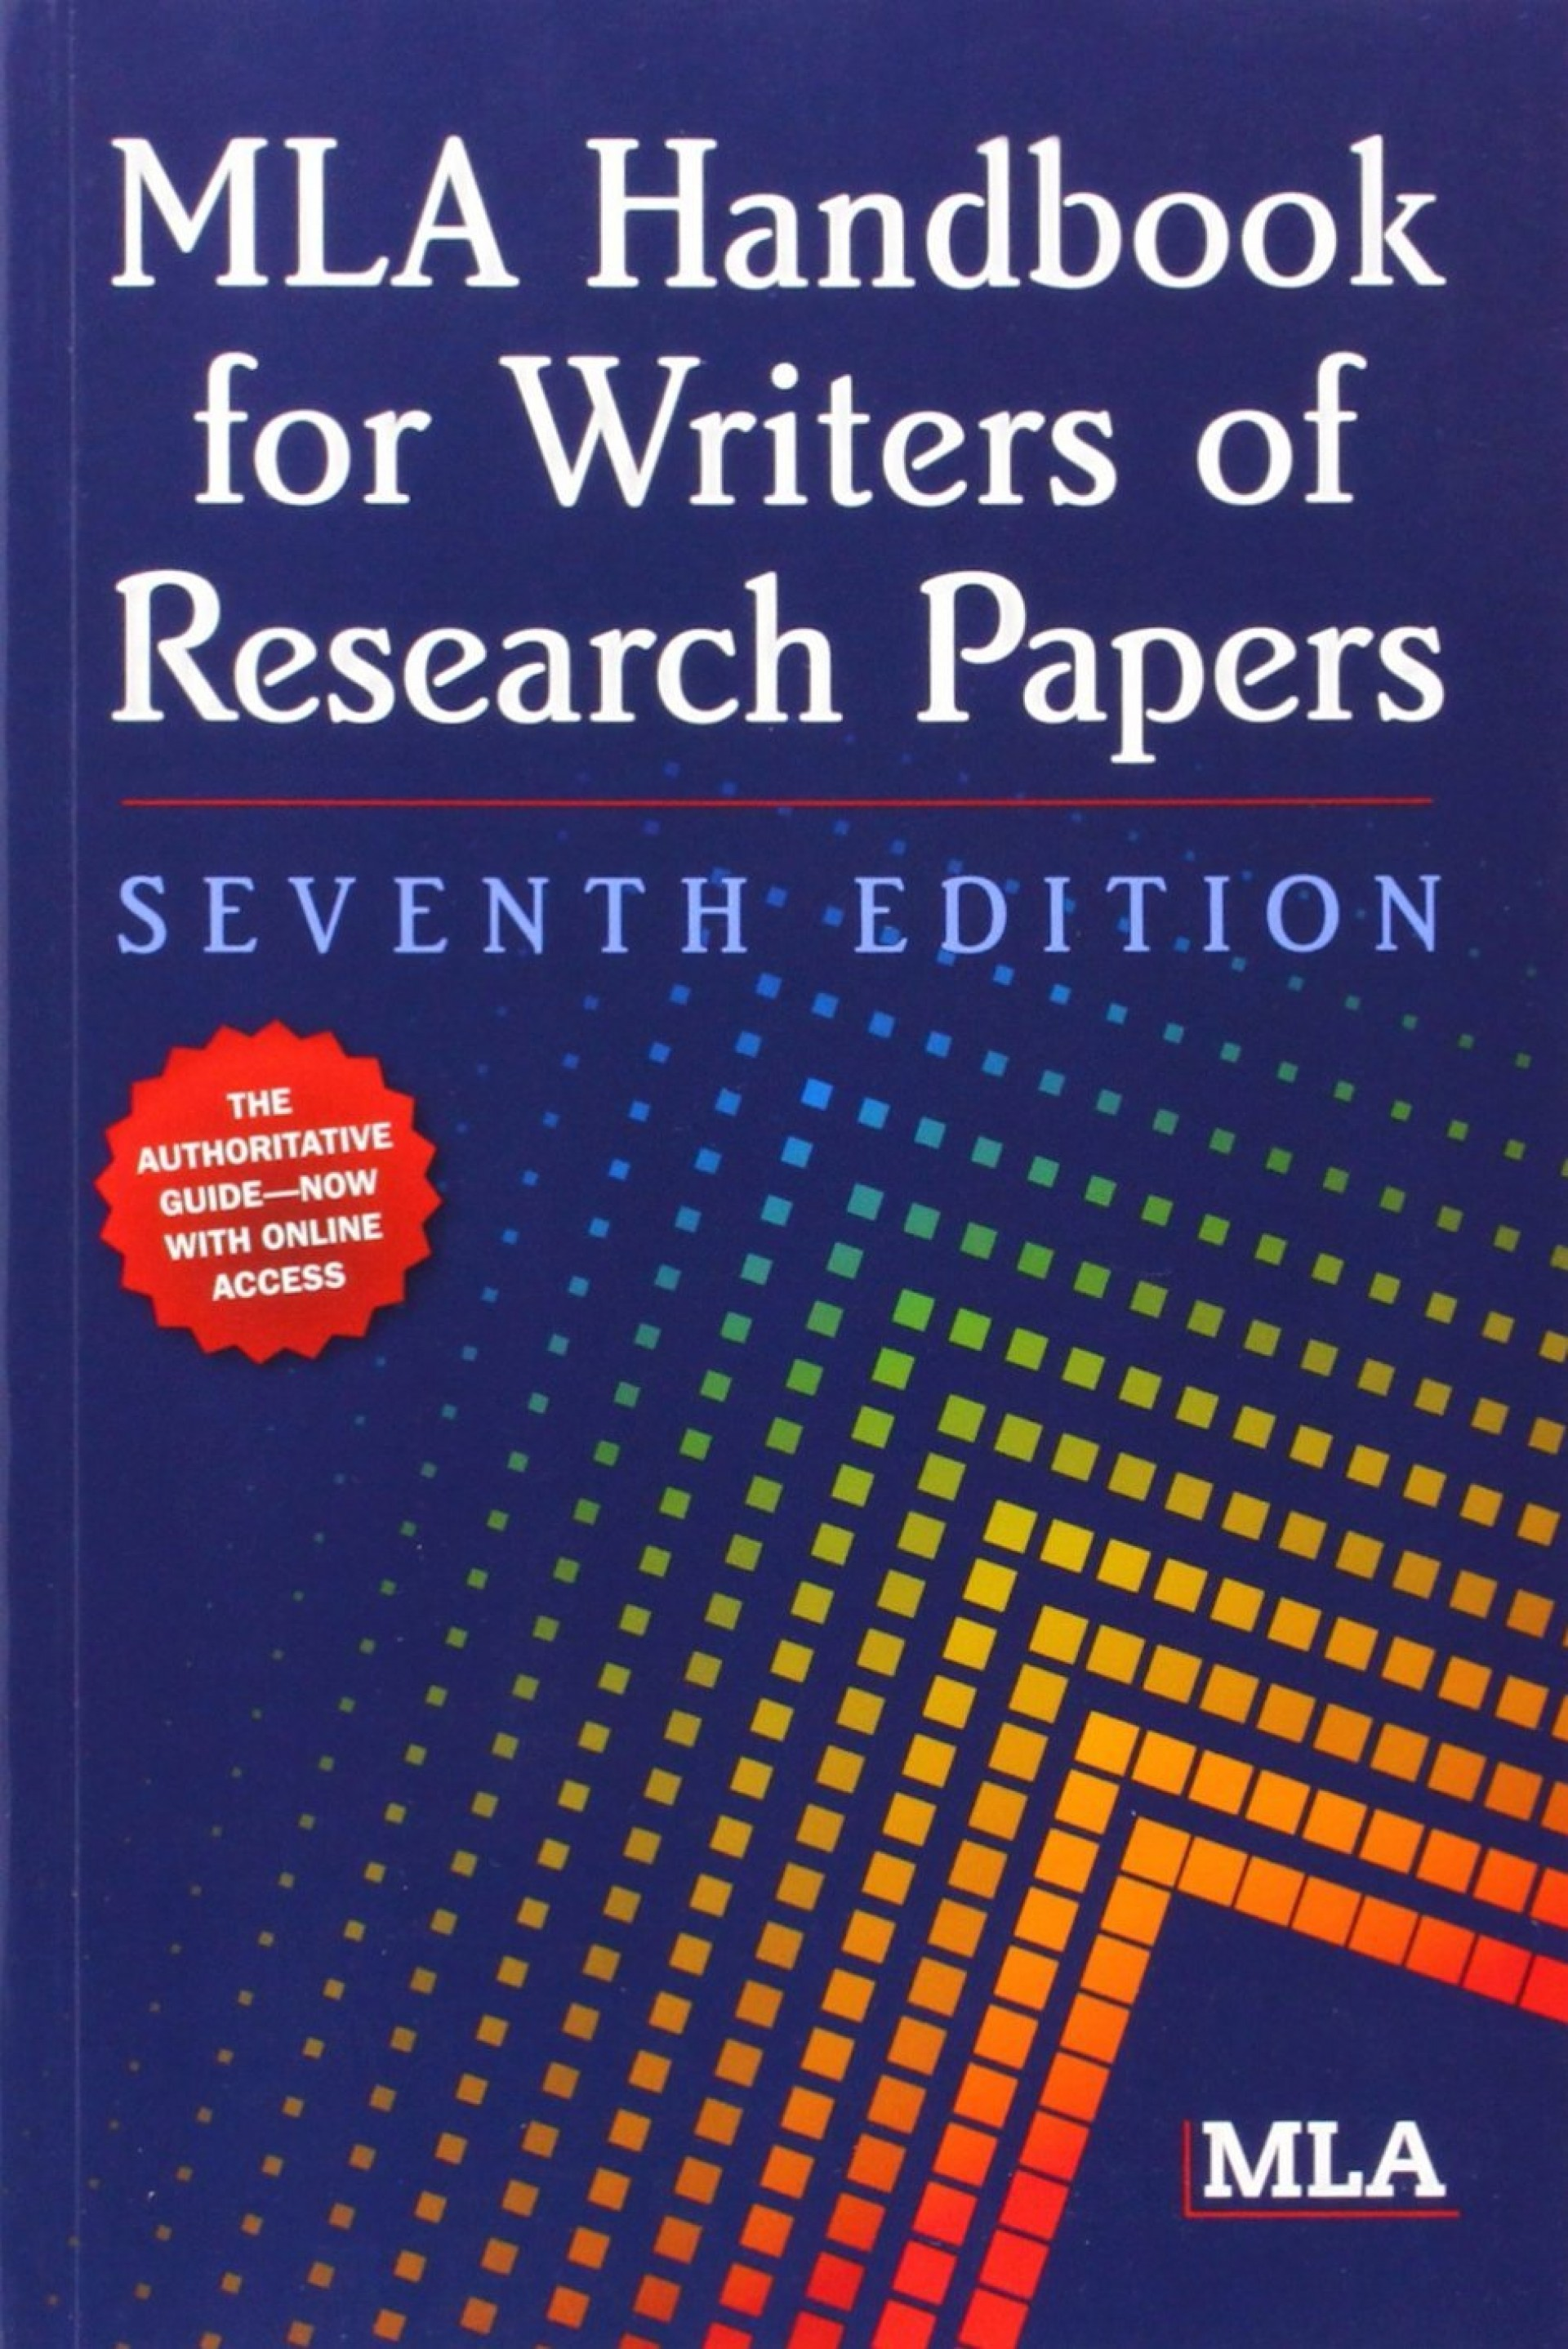 001 Mla Handbook For Writers Of Research Papers 7th Edition Paper Fearsome Pdf Free 2009 Summary 1920